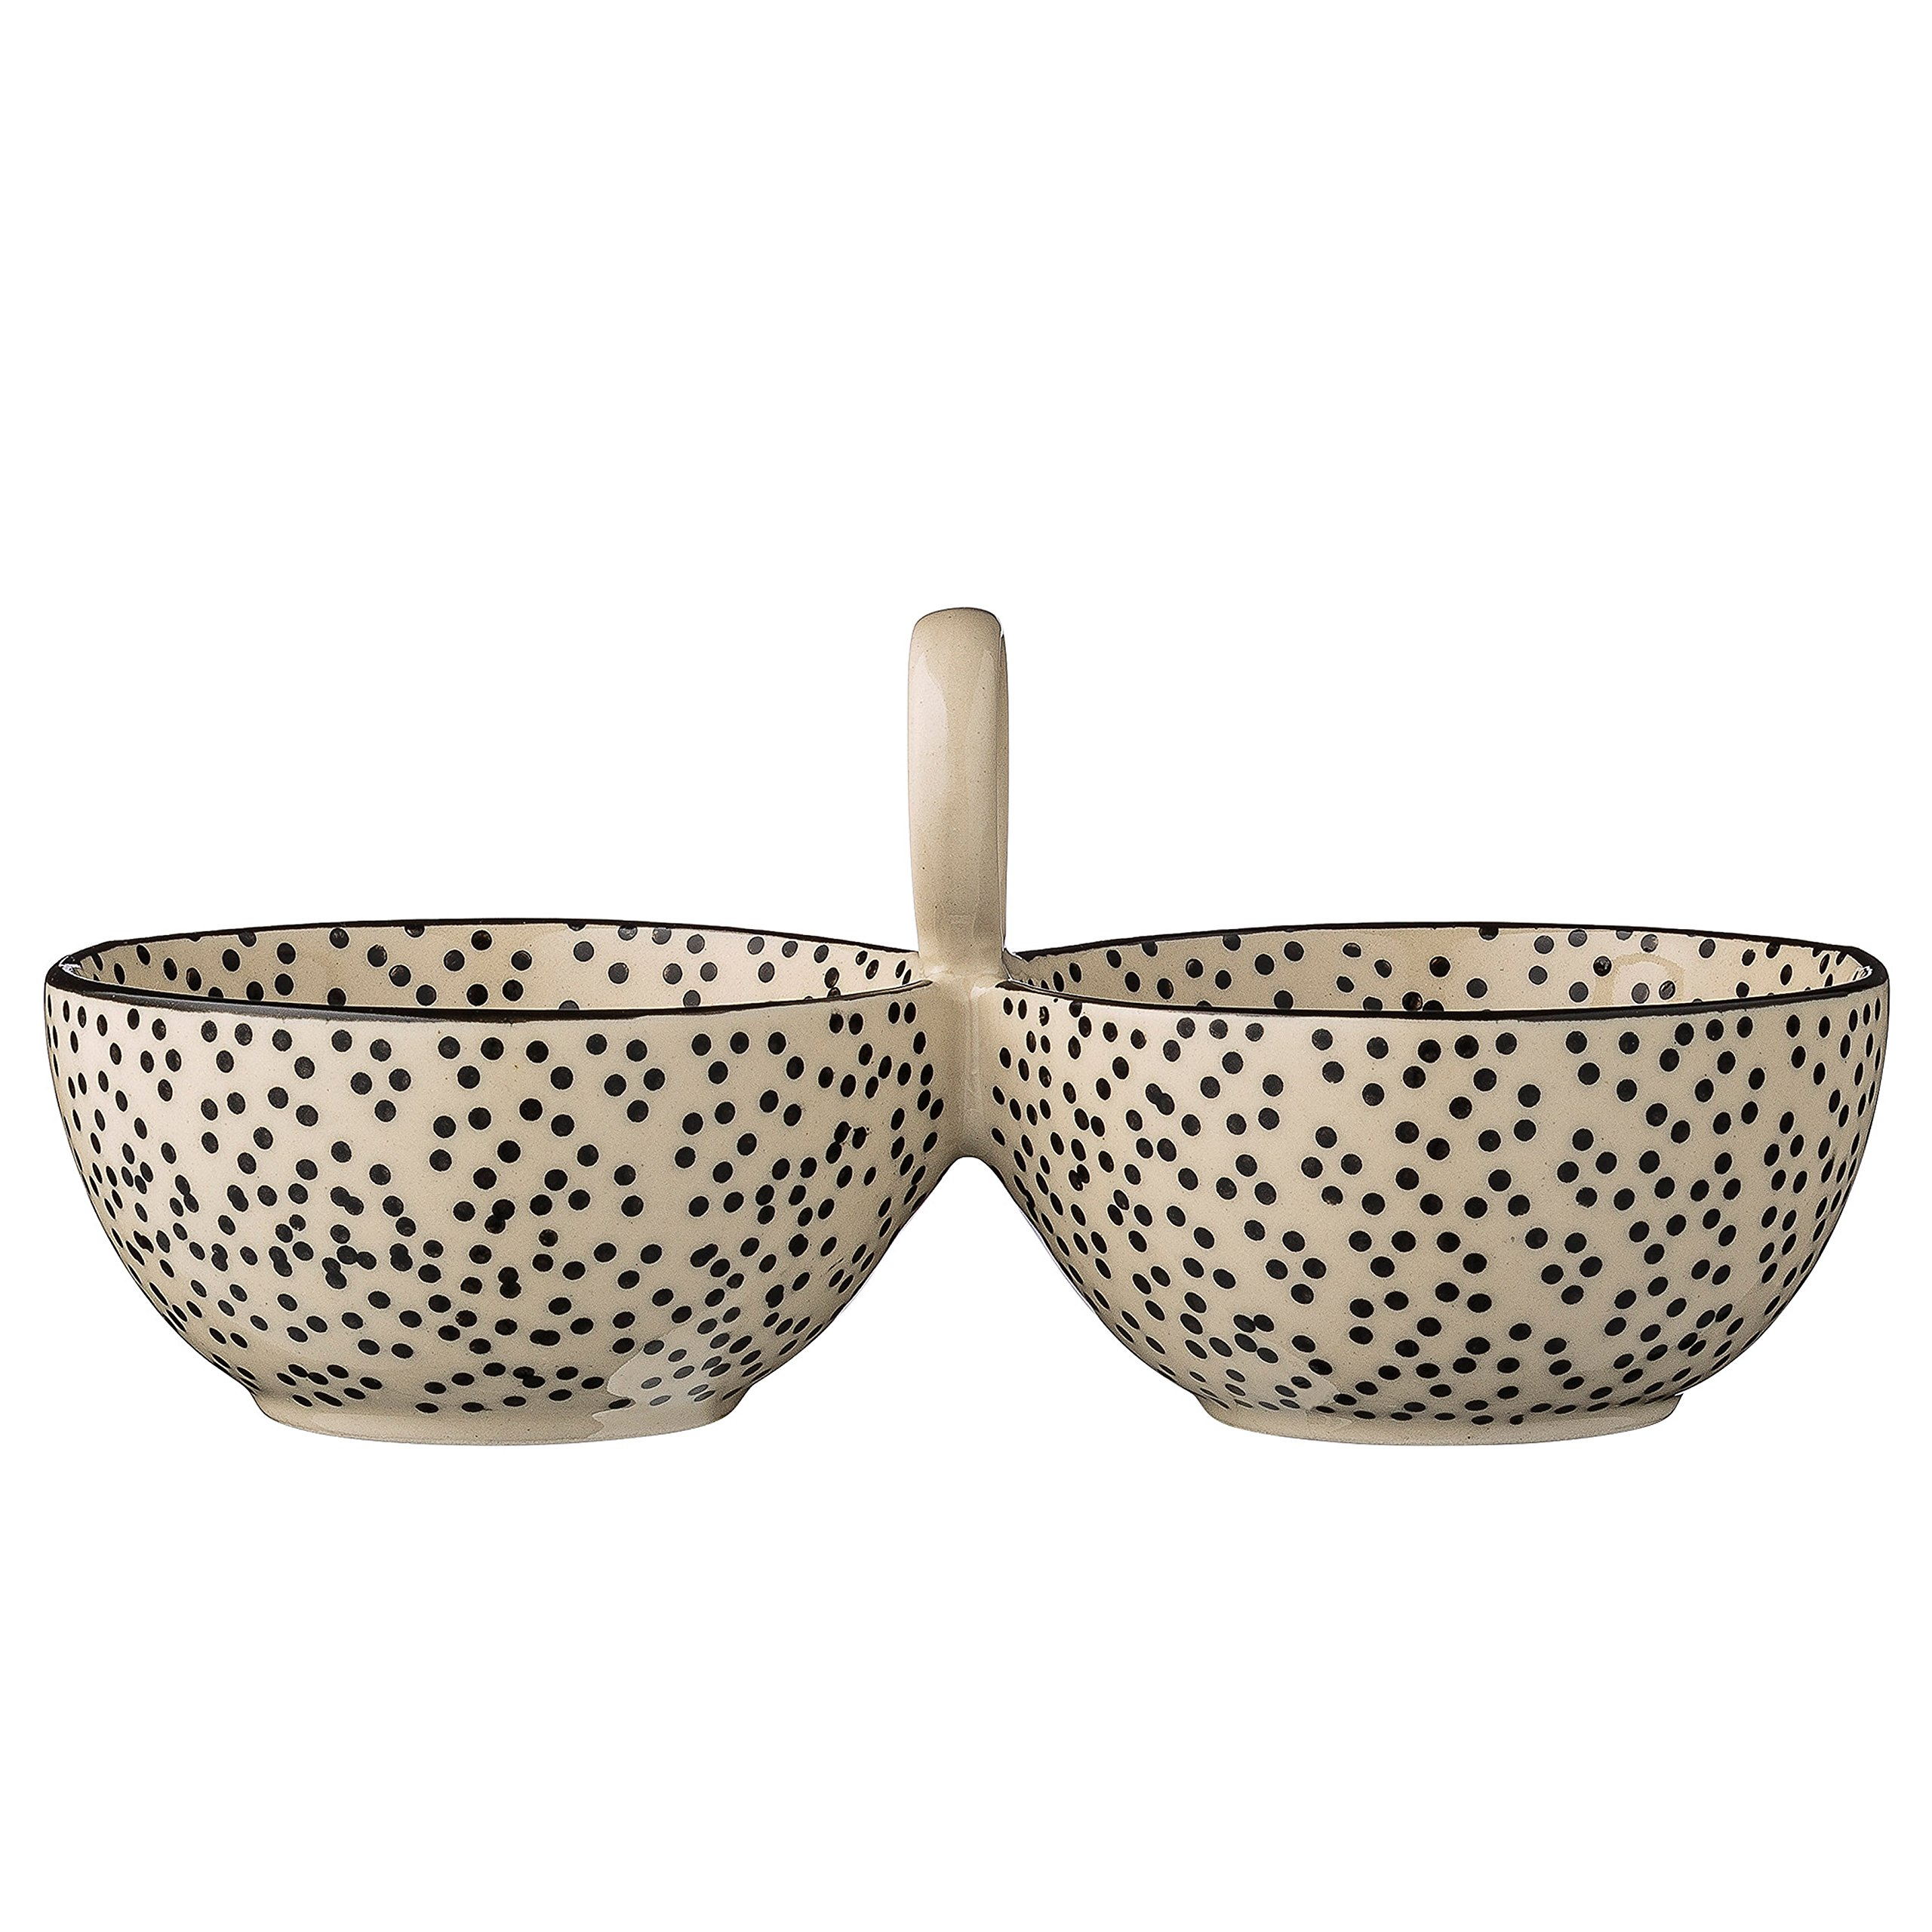 Bloomingville A21100579 Ceramic Julie Double Bowl, Multicolor